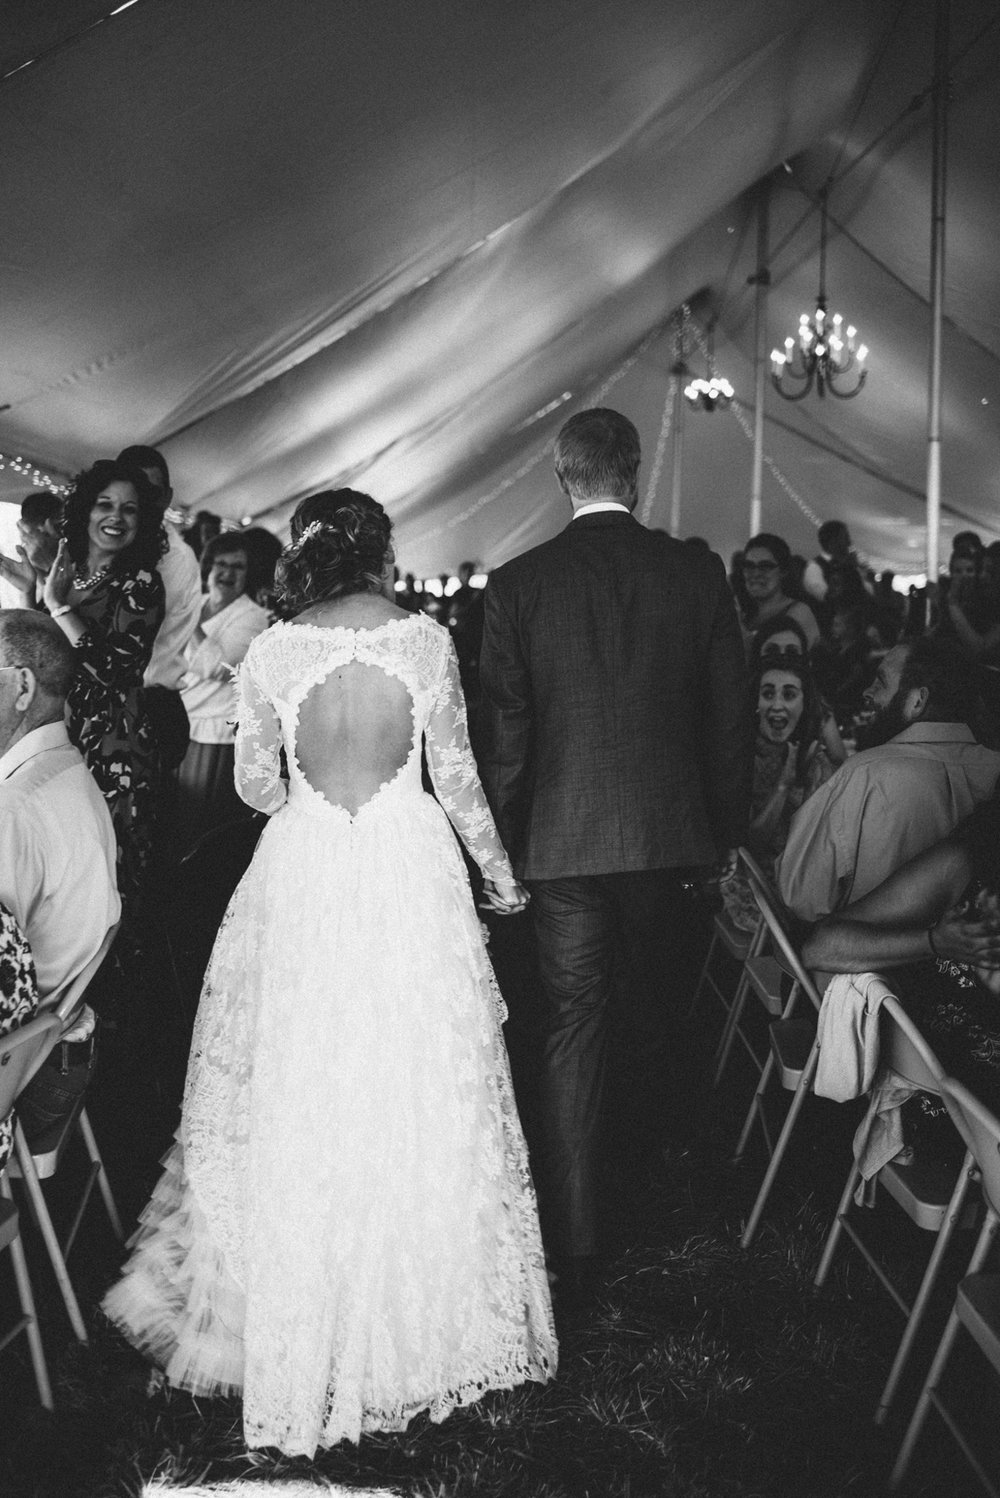 Wedding - Wedding Reception Pictures - Luray - Virginia - White Sails Creative - White Sails Photography - Black and White - Party pictures - Celebration Photos - Dancing - Fun.jpg